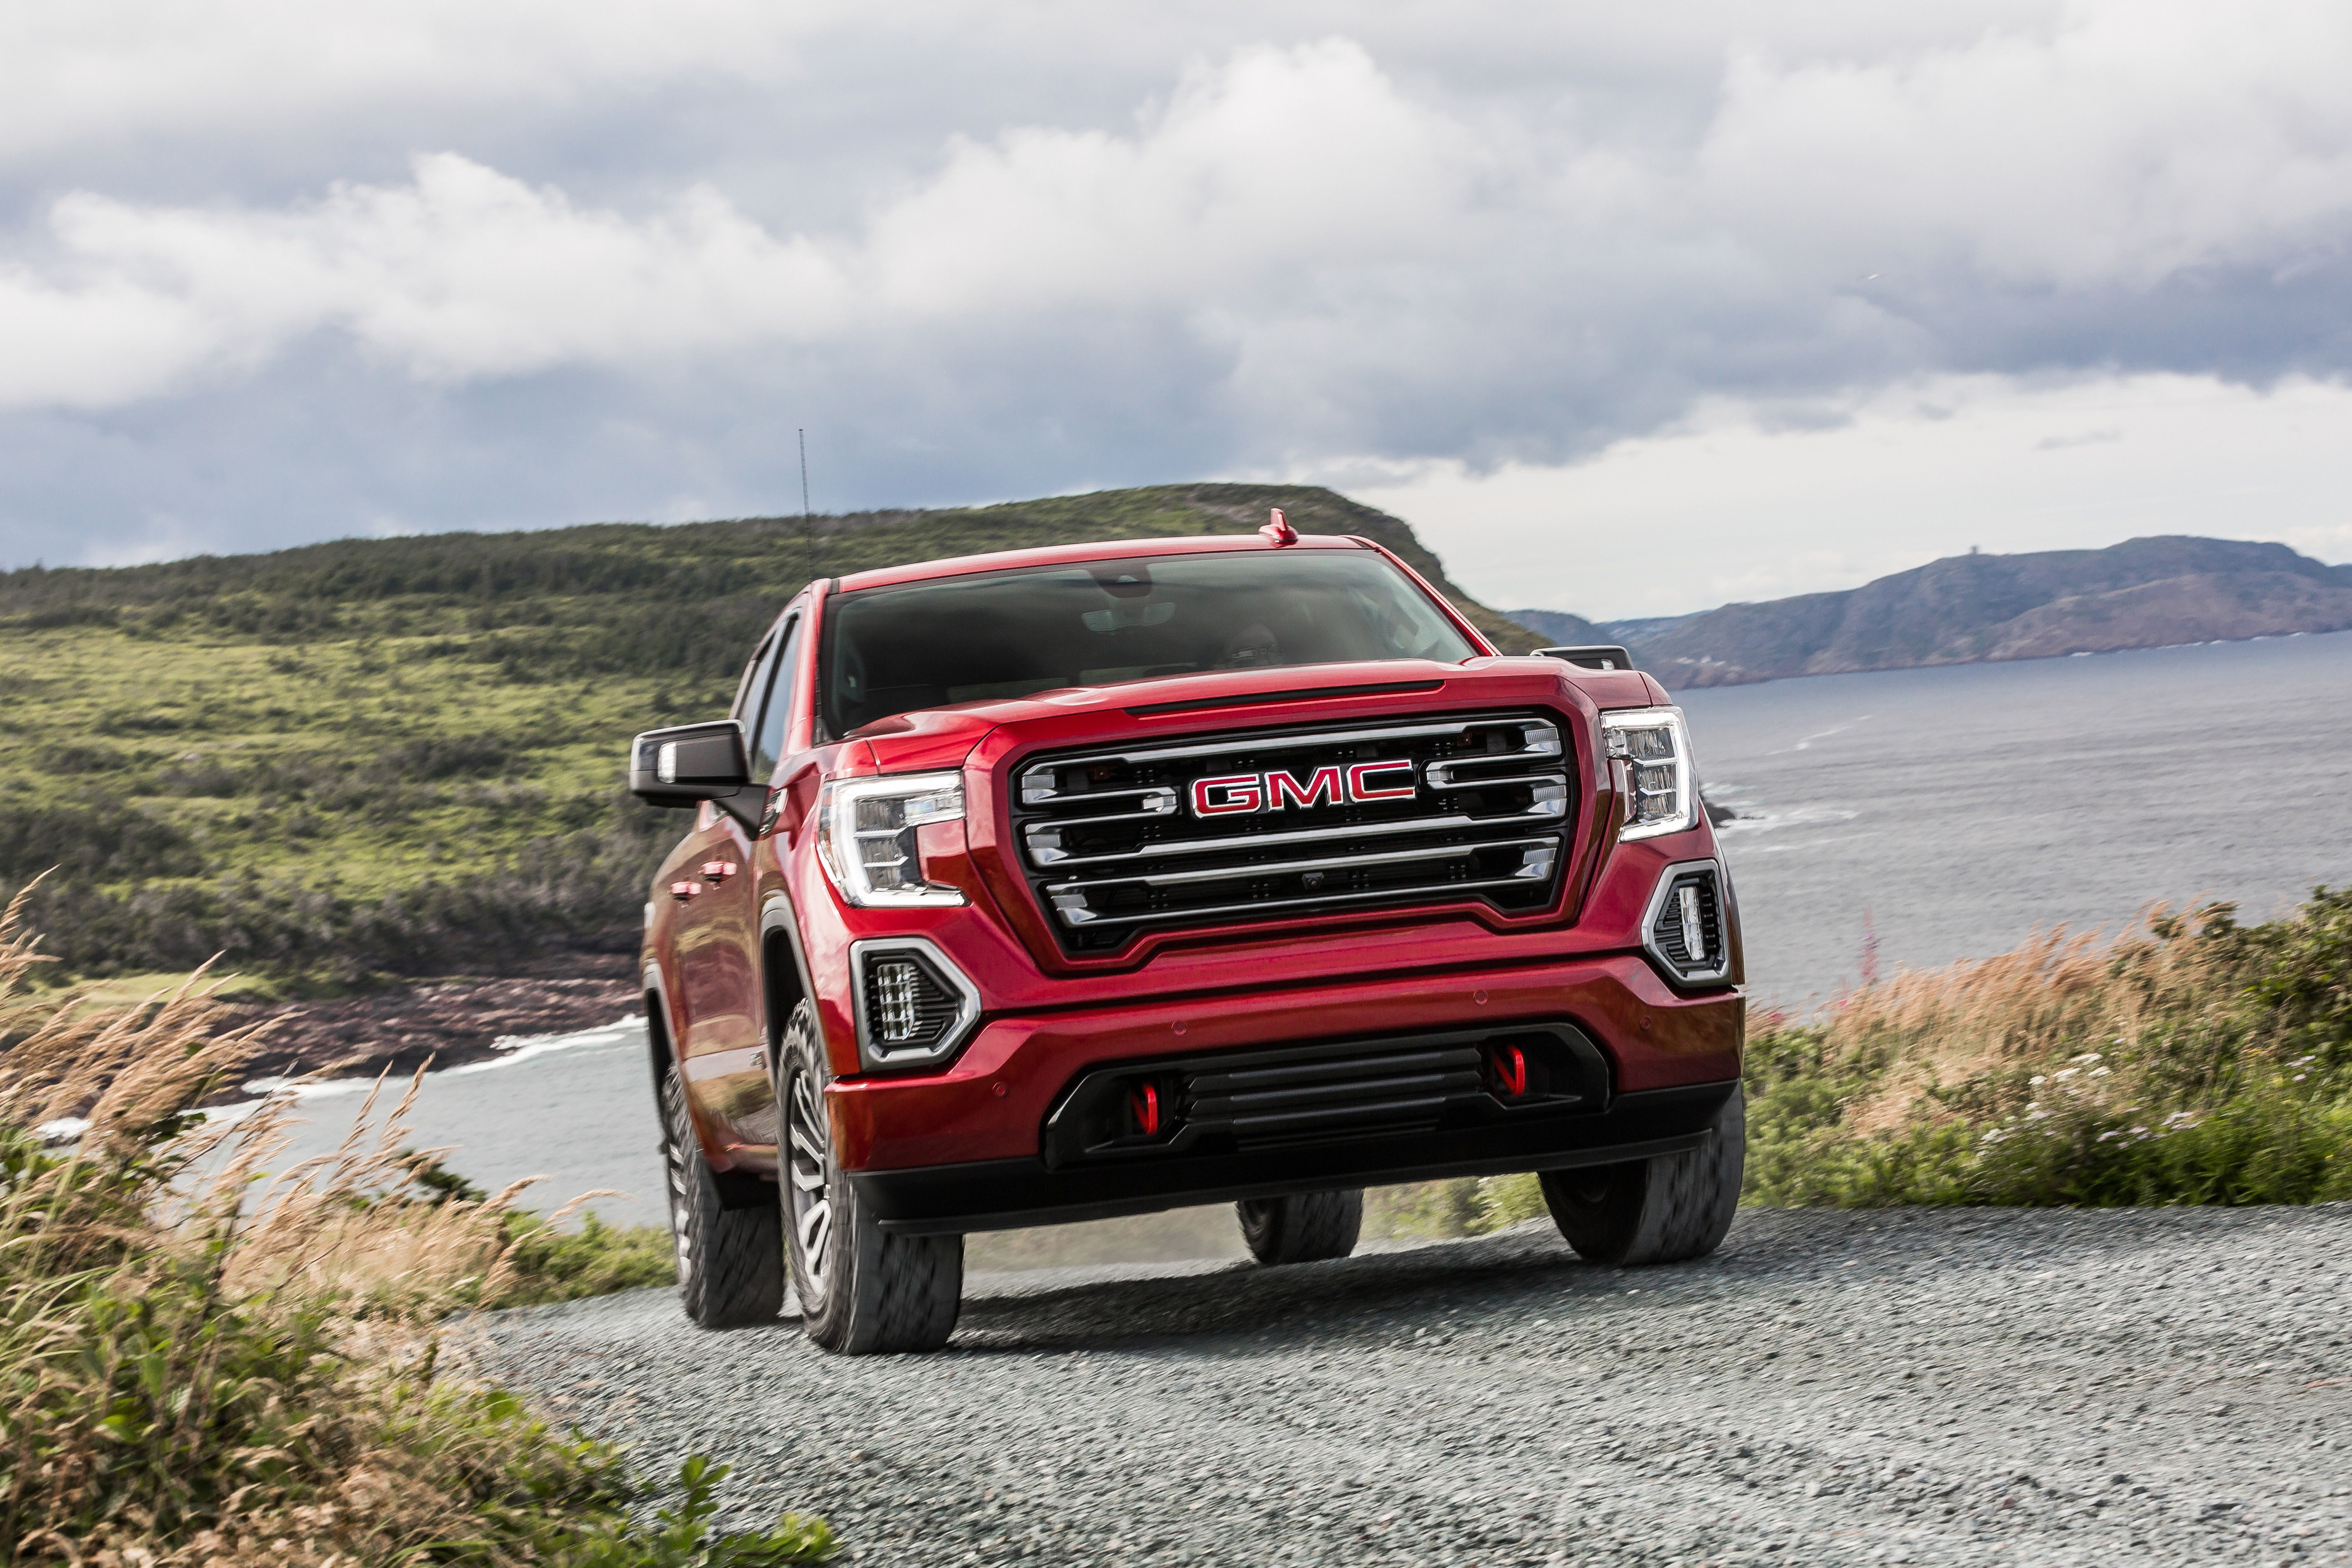 Learn more about the Next Generation 2020 GMC Sierra heavy